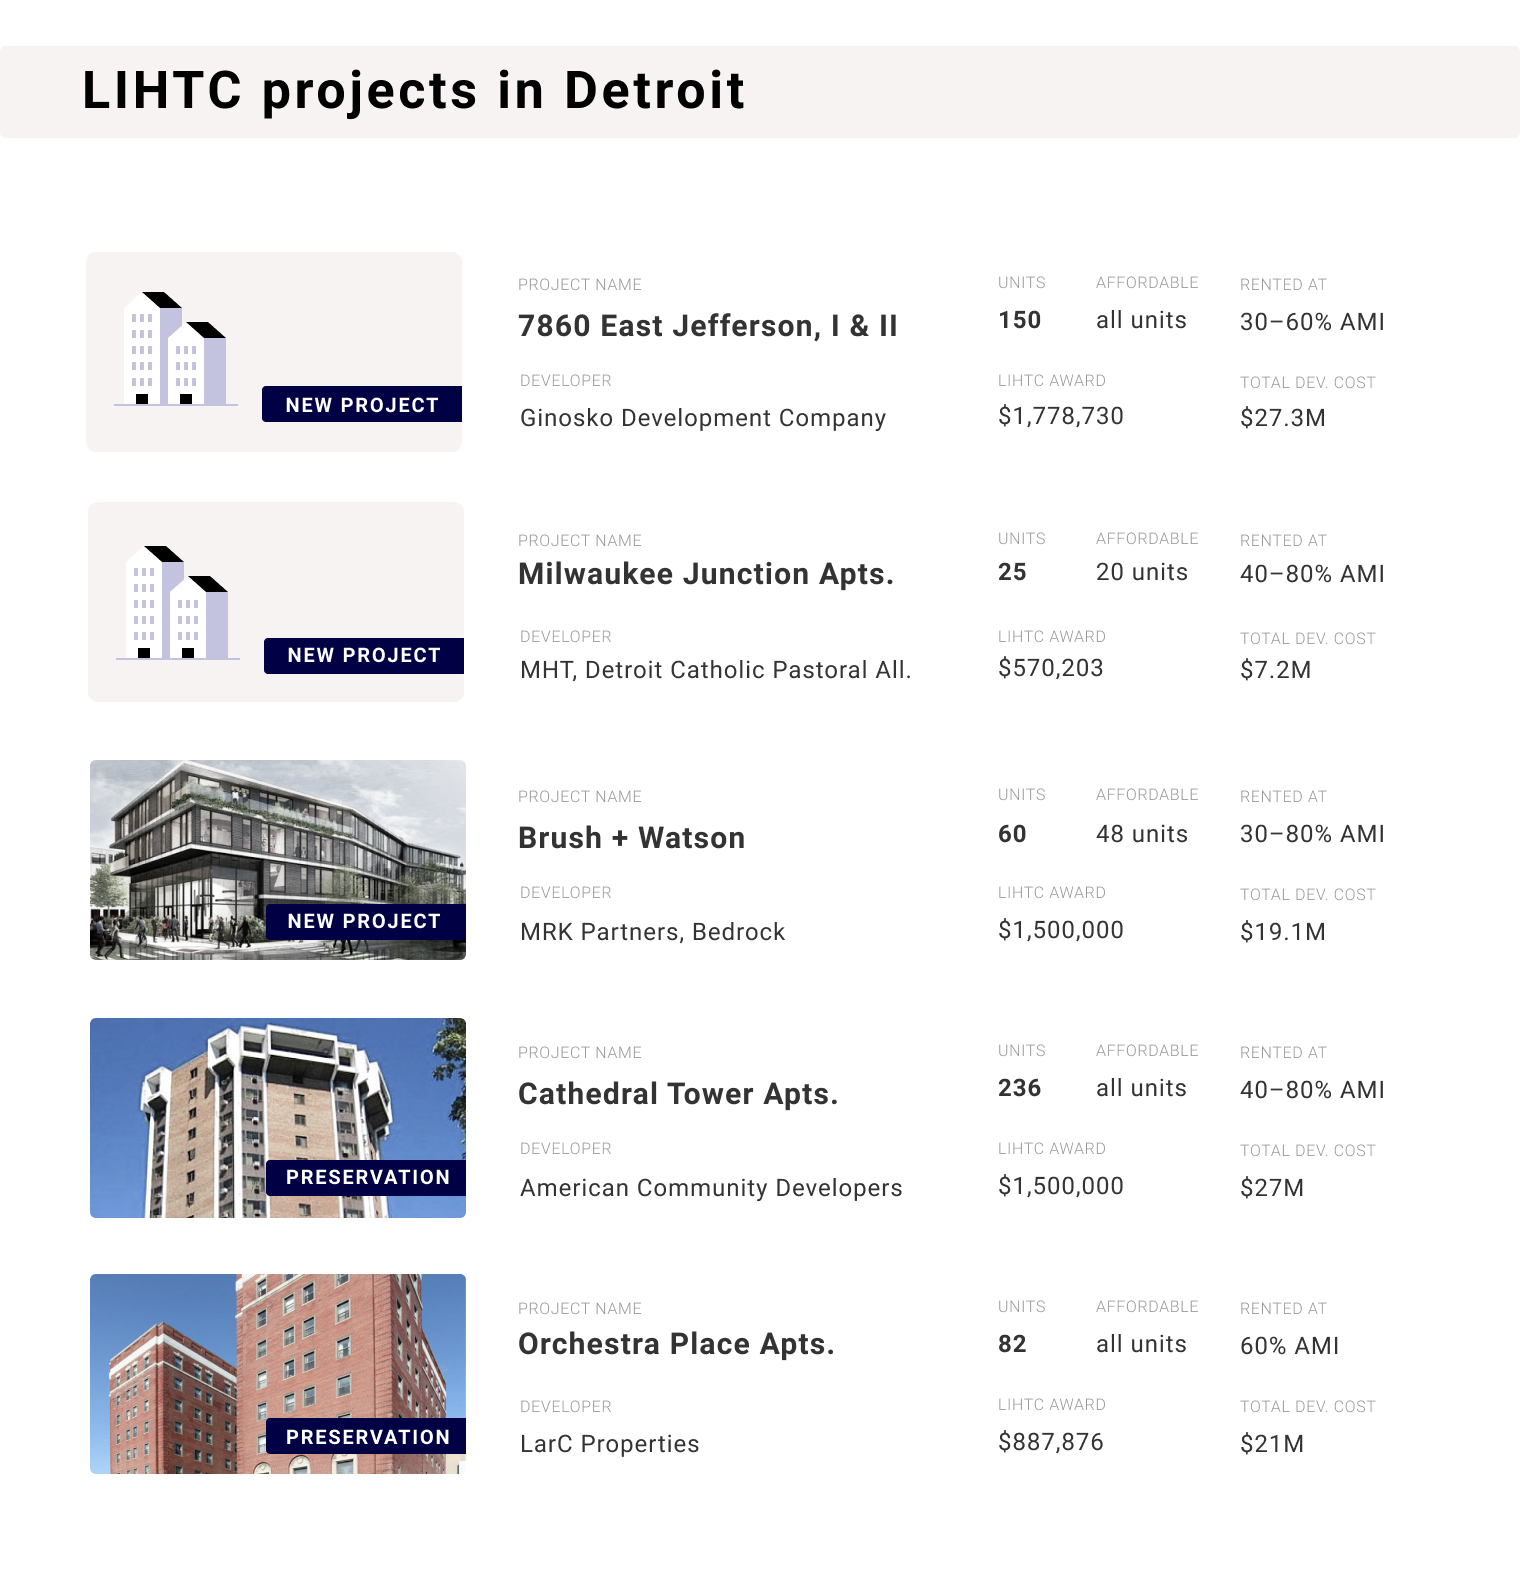 List of the five affordable housing projects receiving Low-Income Tax Credits in 2019. The five projects are: 7860 East Jefferson, Milwaukee Junction Apartments, Brush + Watson, Cathedral Tower Apartments, Orchestra Place Apartments.